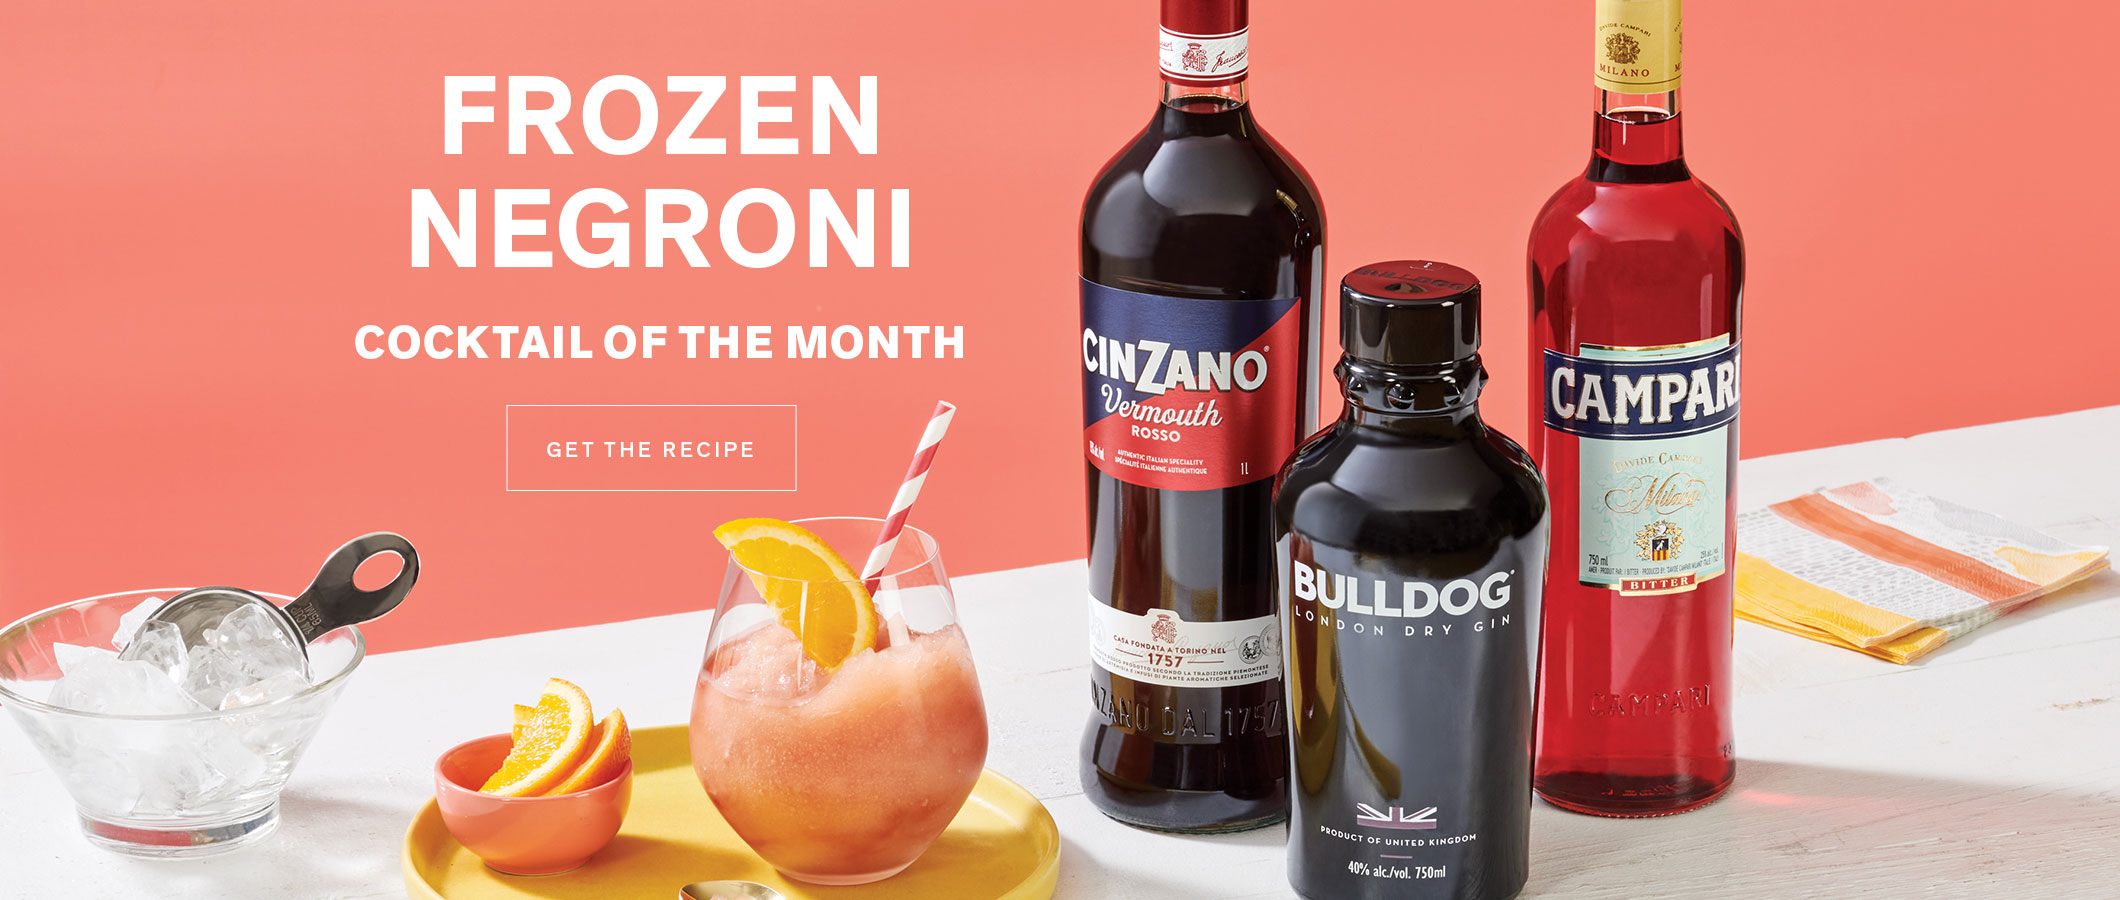 Cocktail of the Month: Frozen Negroni